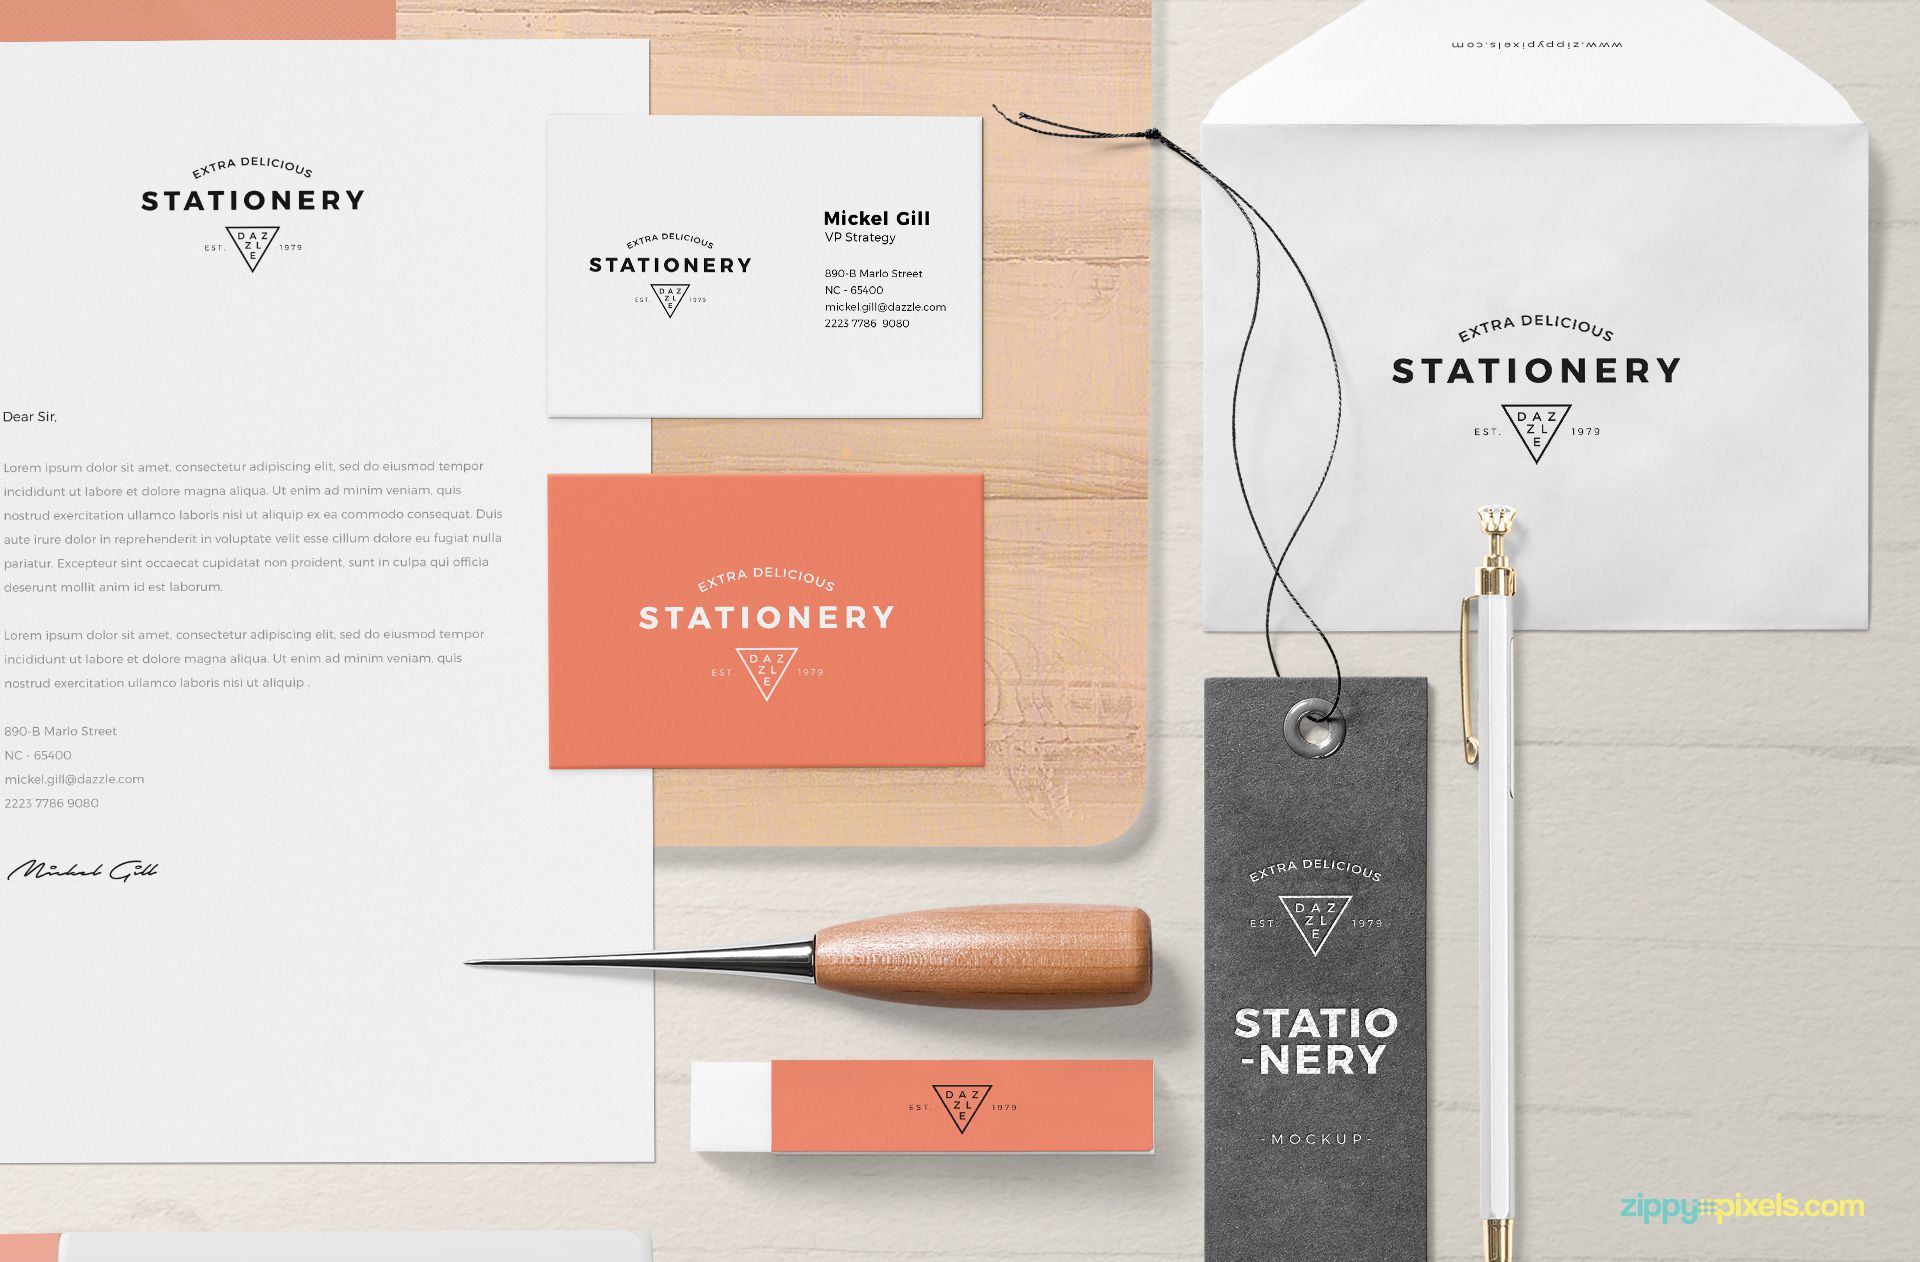 Stationery mockup items.